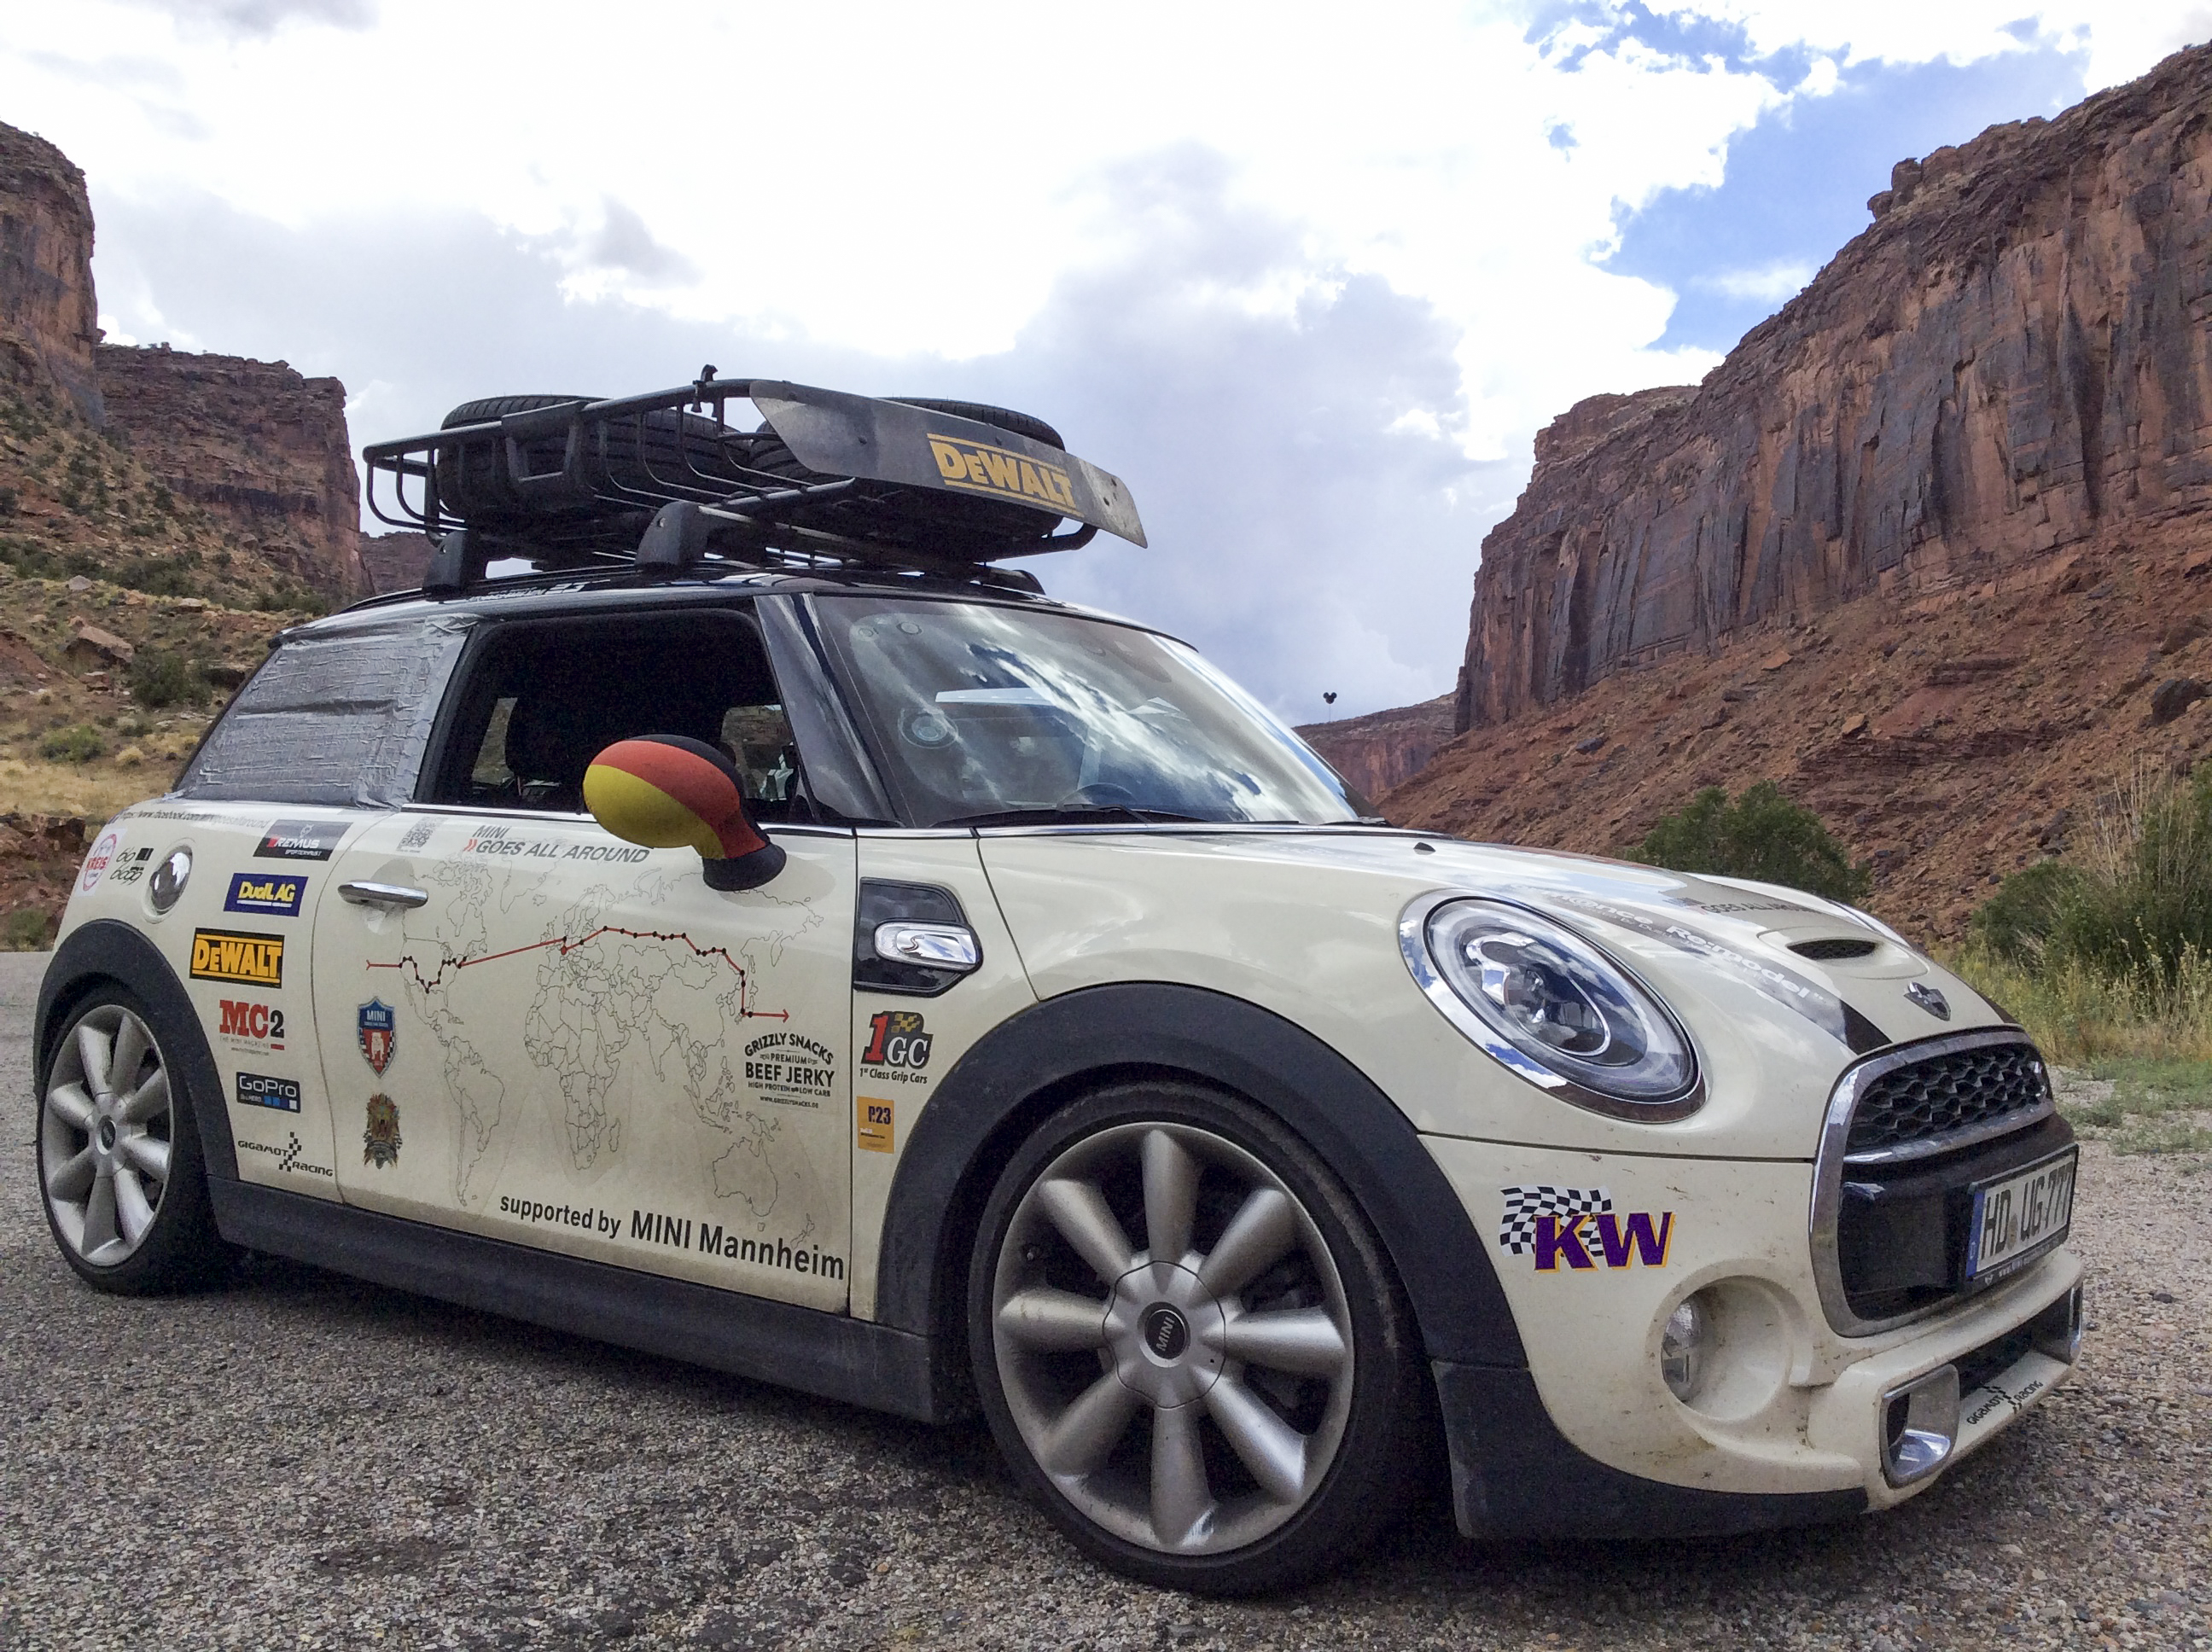 kw endurance test a new mini drives round the world with a kw coilover kit kw automotive blog. Black Bedroom Furniture Sets. Home Design Ideas